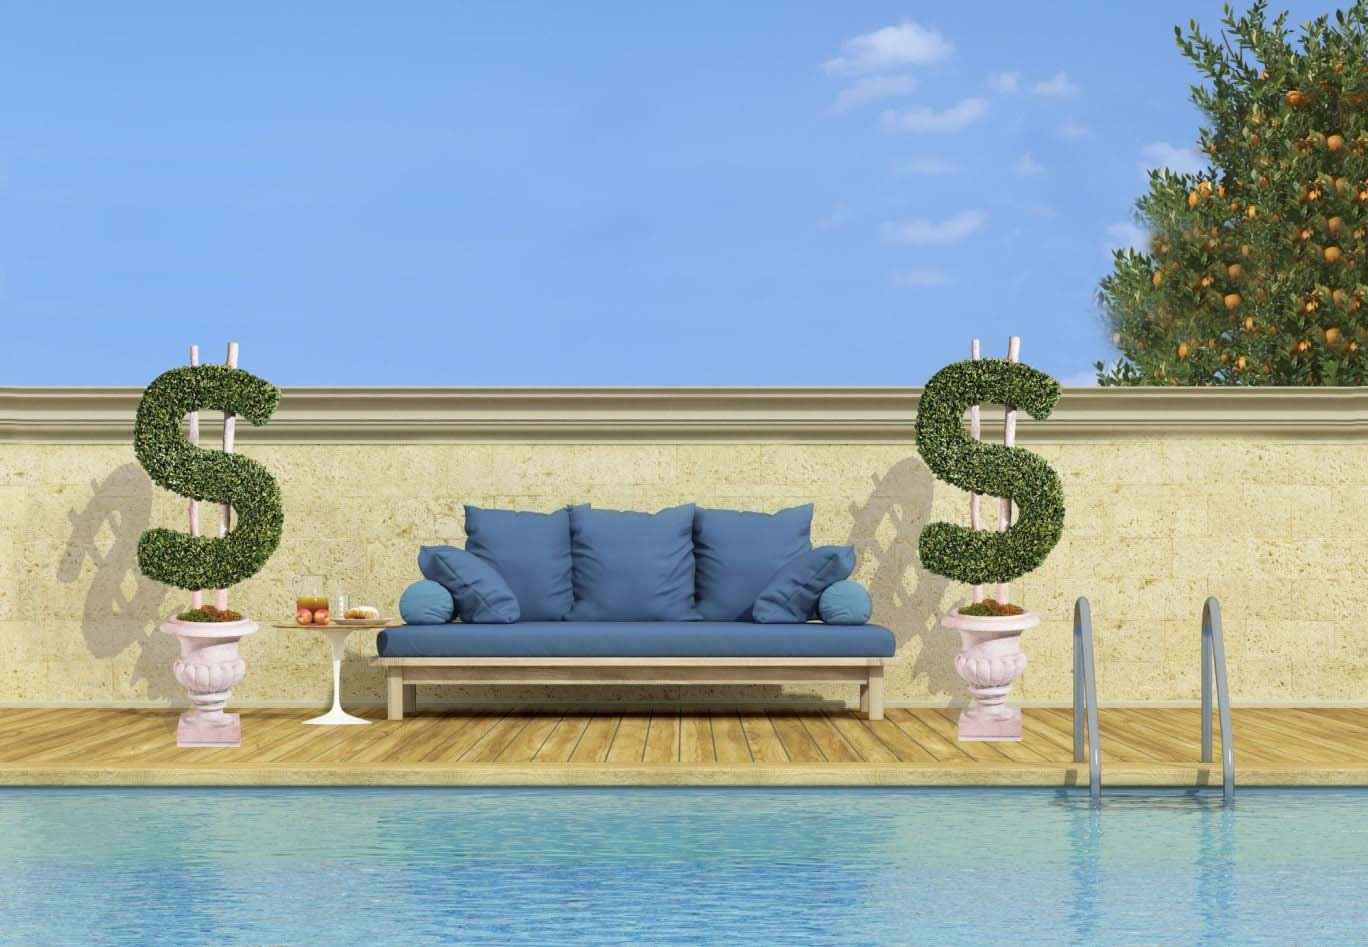 Inground Swimming Pool Increases the Value of Your Home